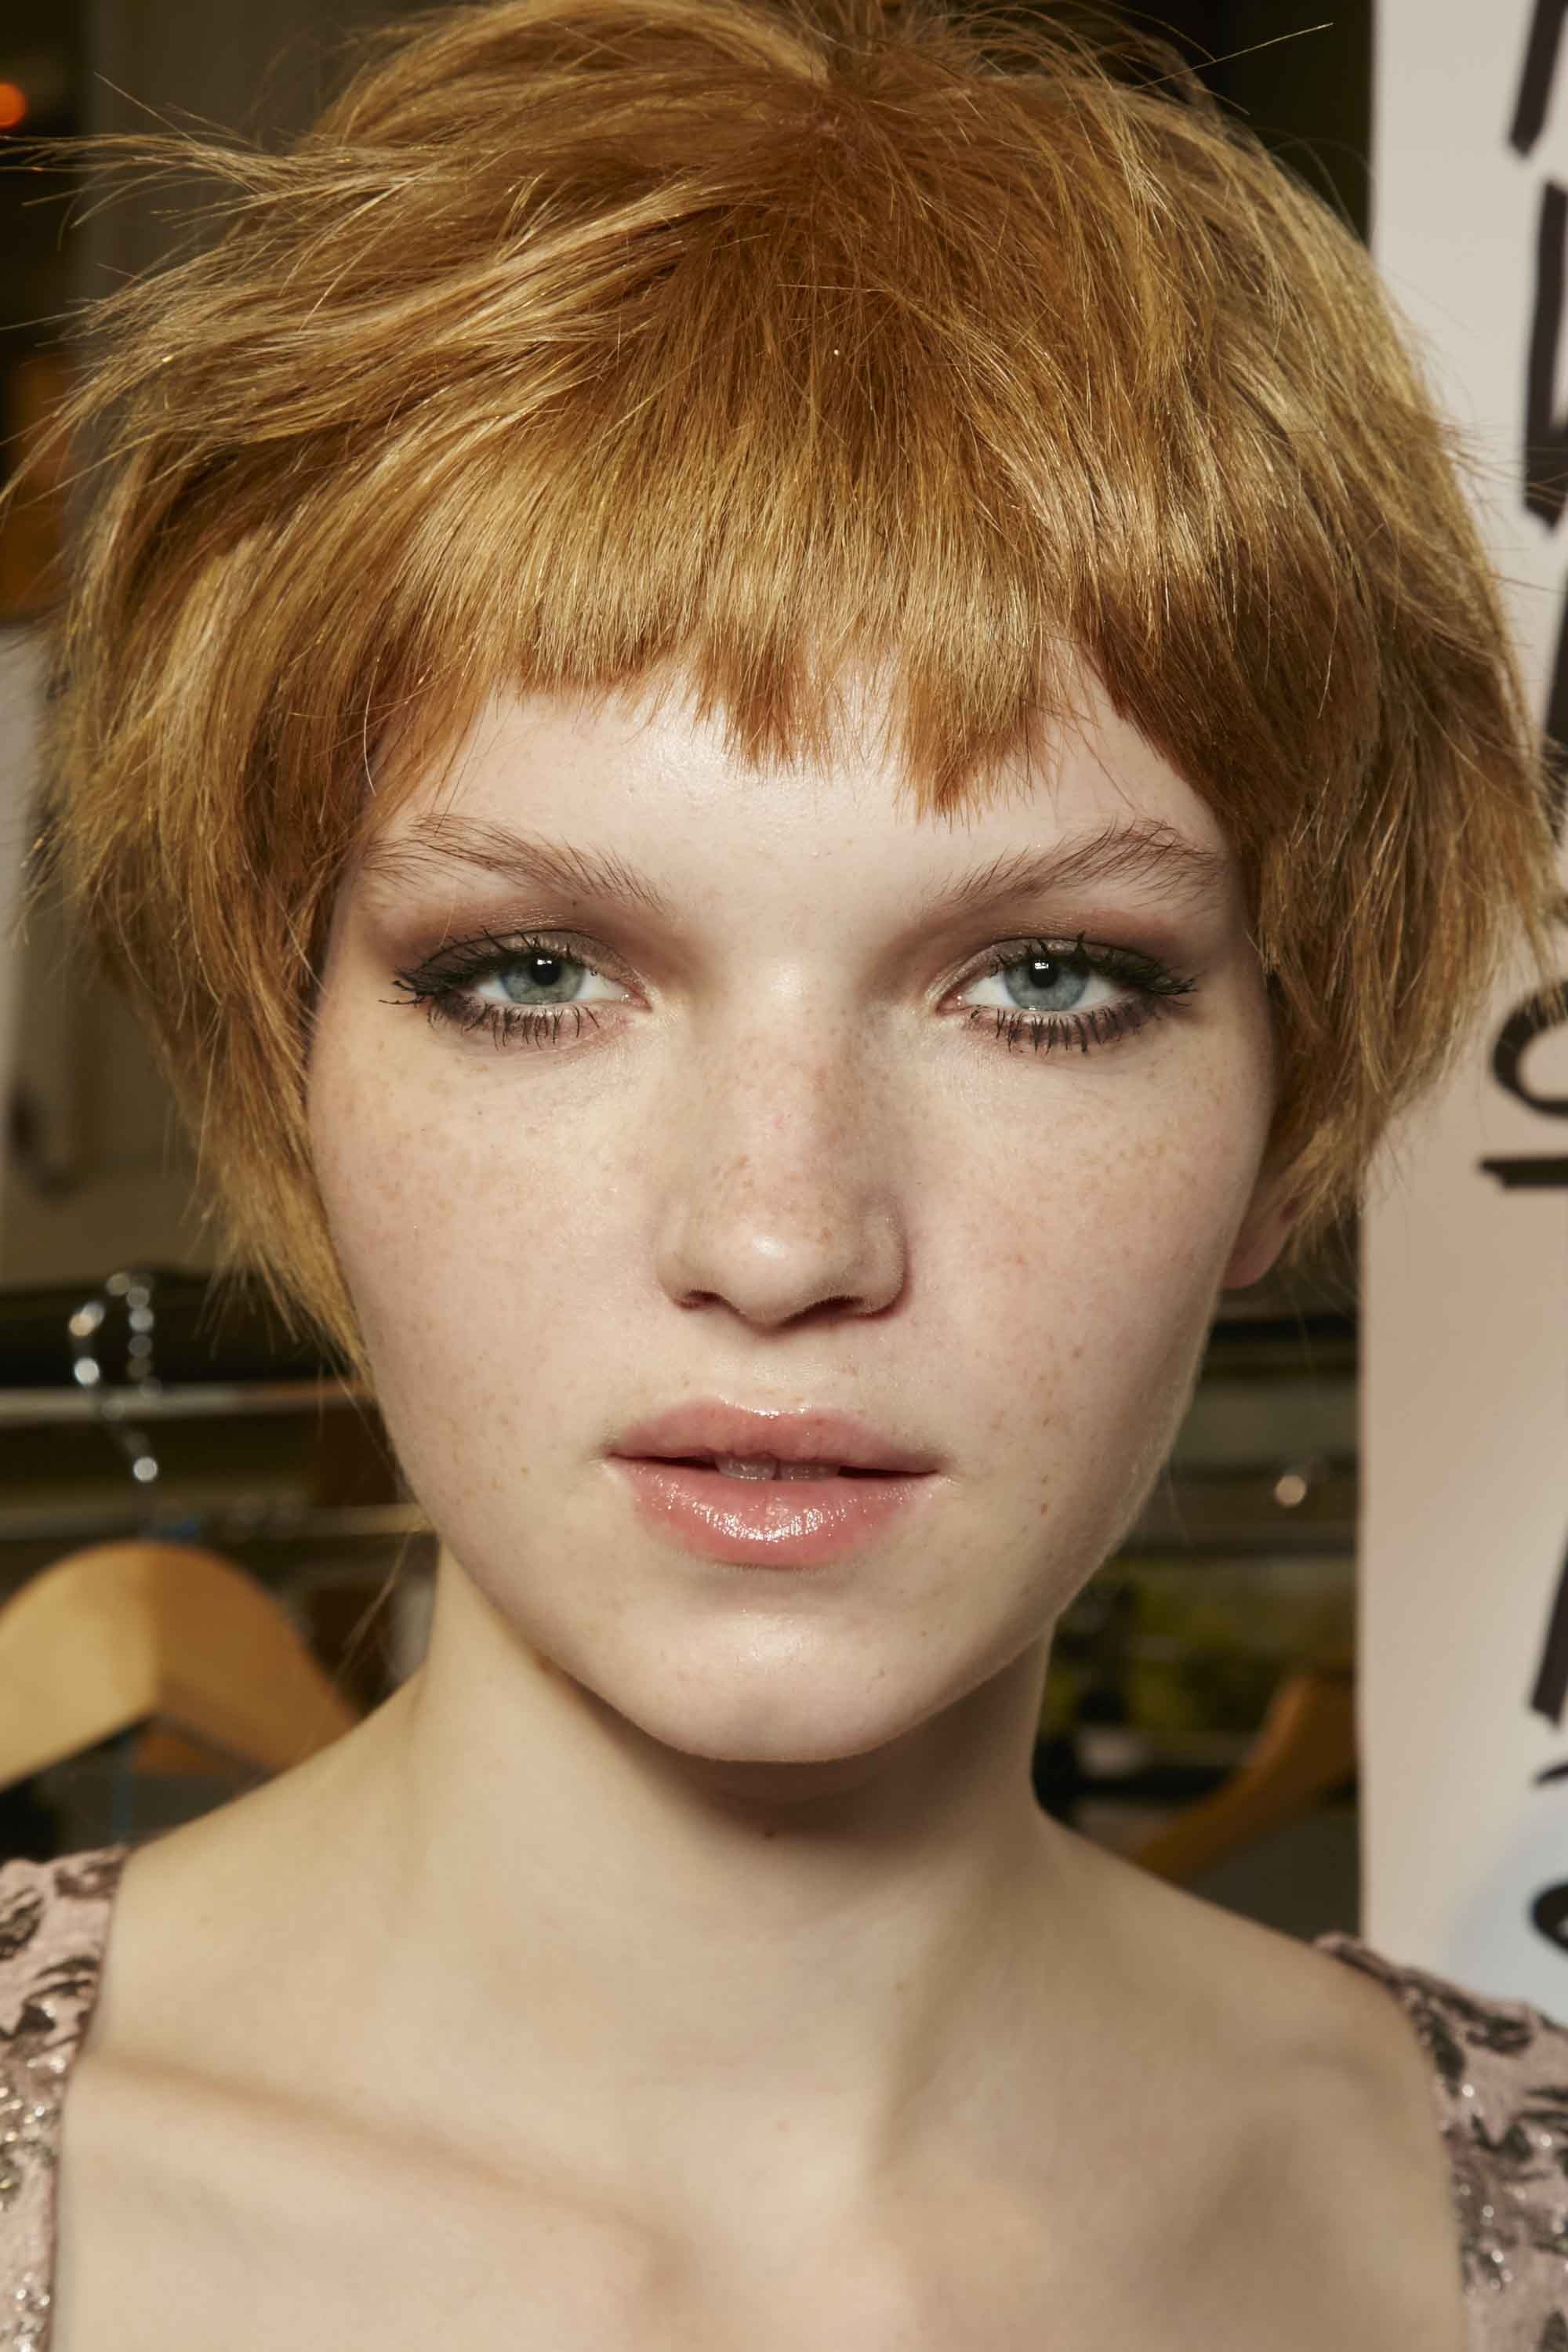 Pixie Cuts For Oval Faces: 5 Directional Looks To Try Now Within Trendy Choppy Bowl Cut Pixie Hairstyles (View 13 of 20)